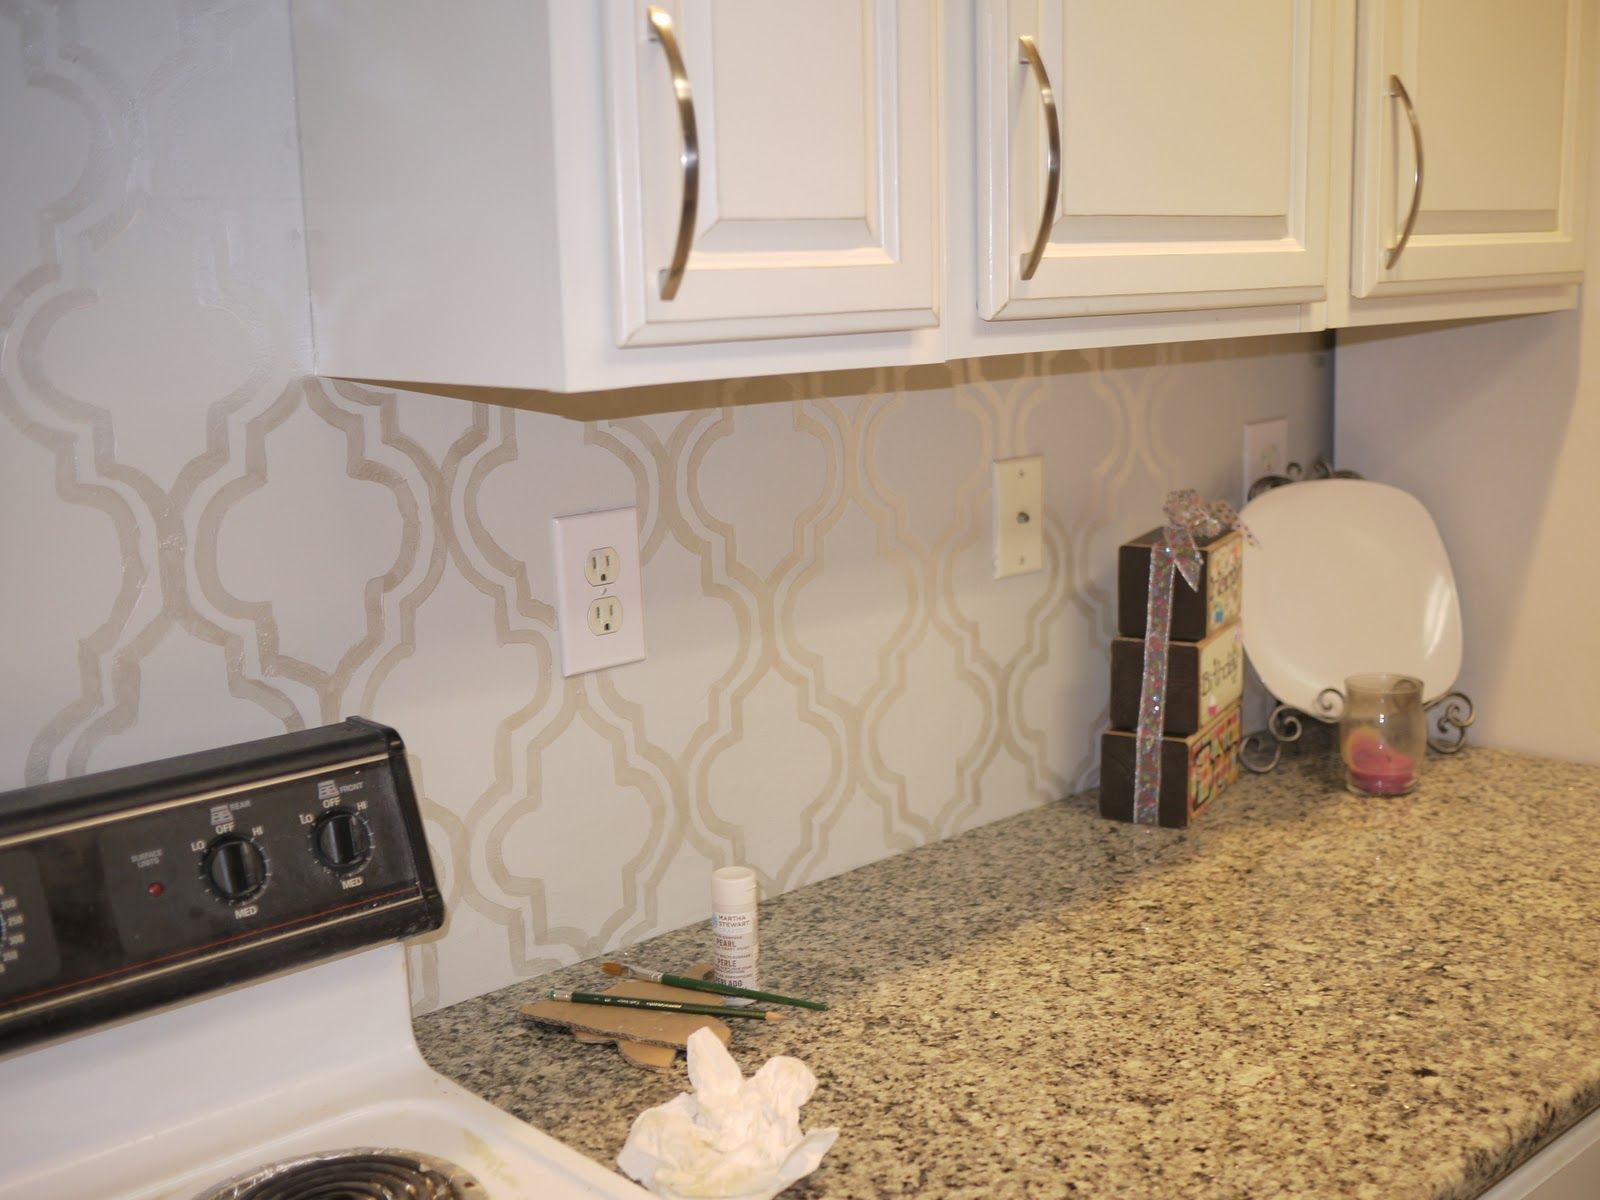 Our Pearlized Stenciled Backsplash Diy Kitchen Backsplash